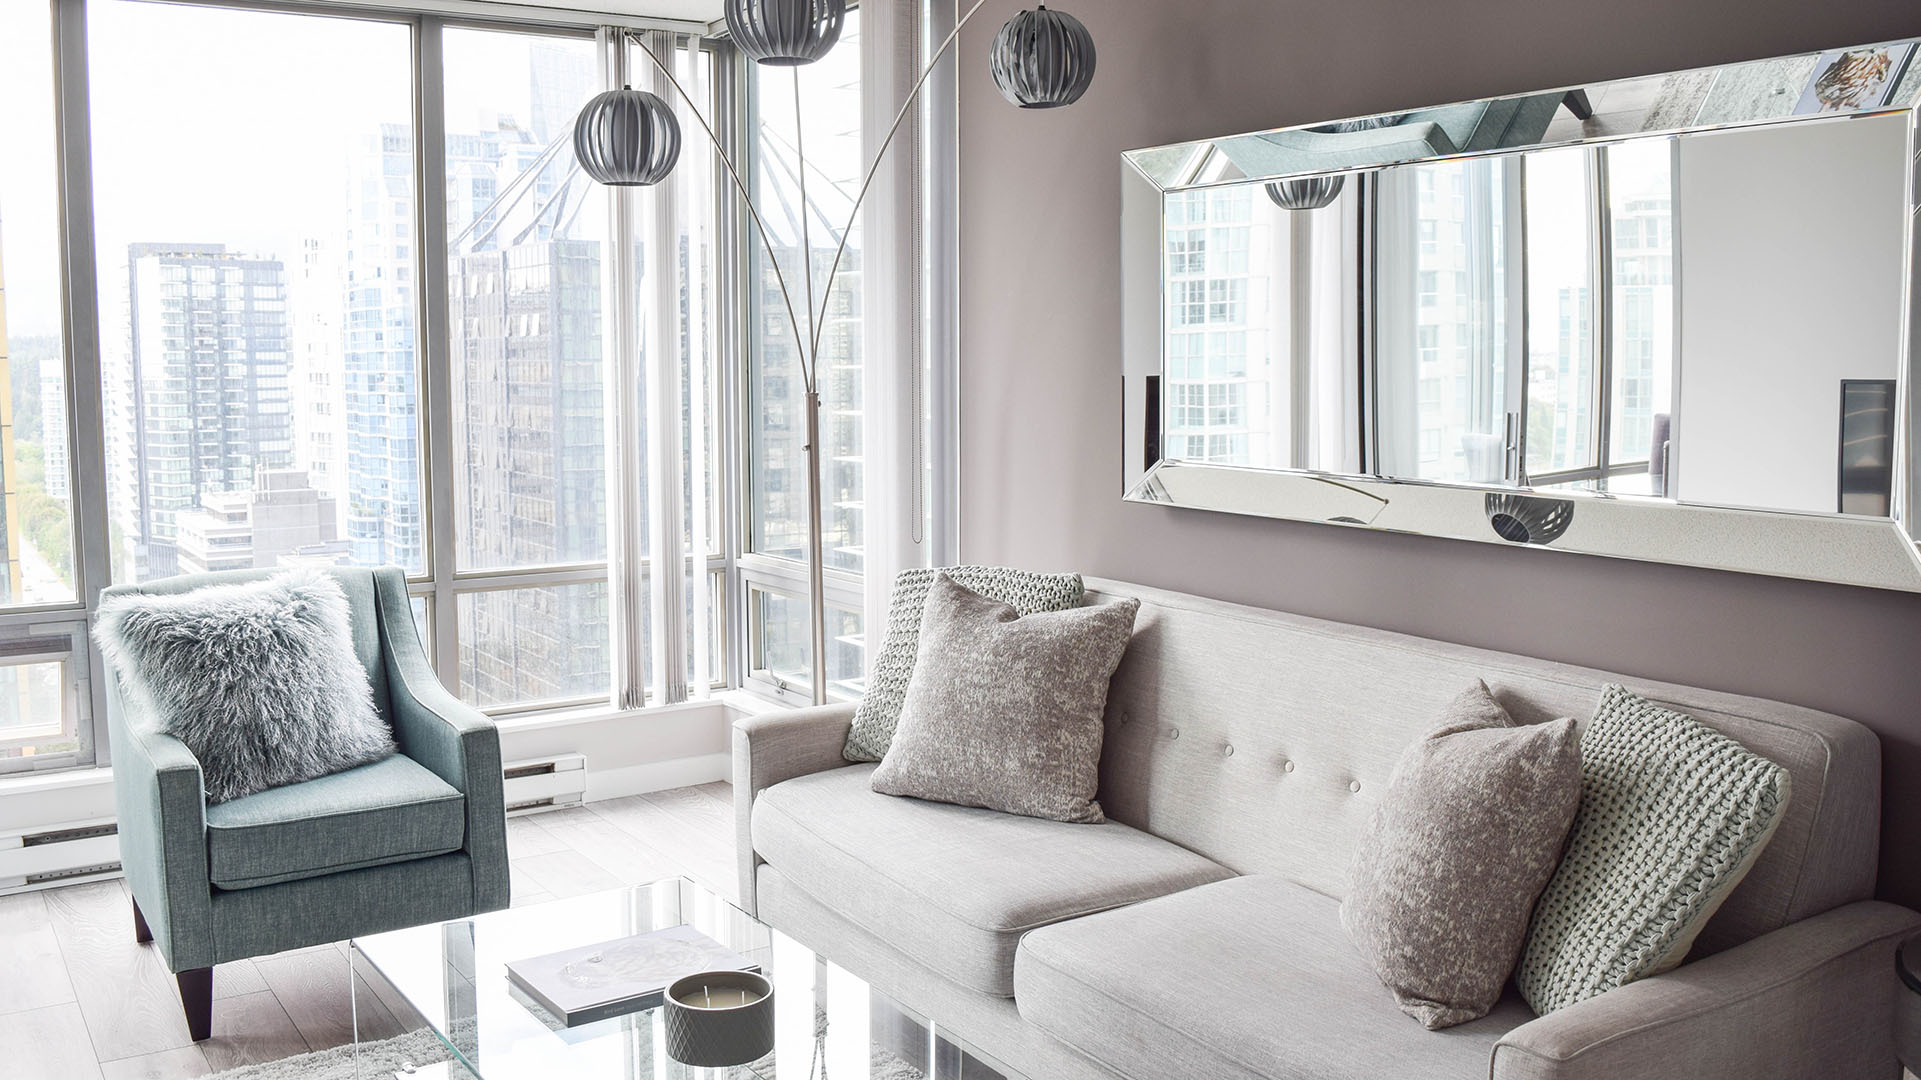 Photo of fully furnished apartment #1402 at The Residences on Georgia, 1288 West Georgia Street, Vancouver, BC